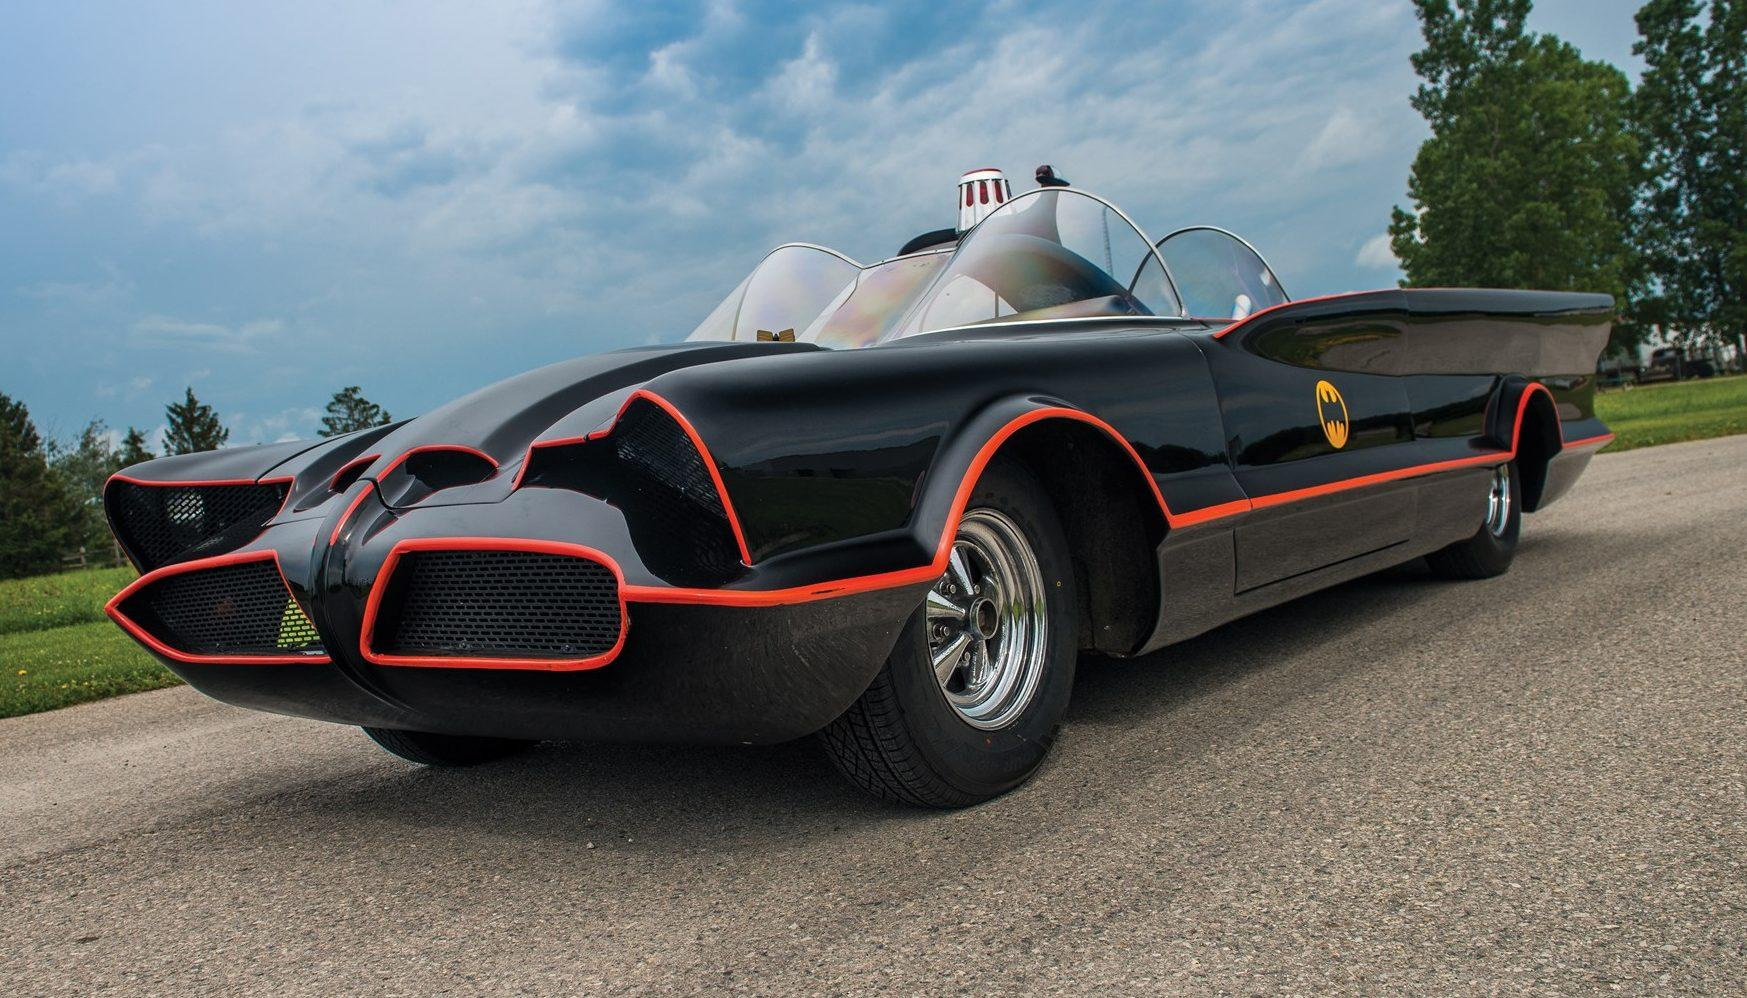 Batmobile 1966 Lincoln Futura